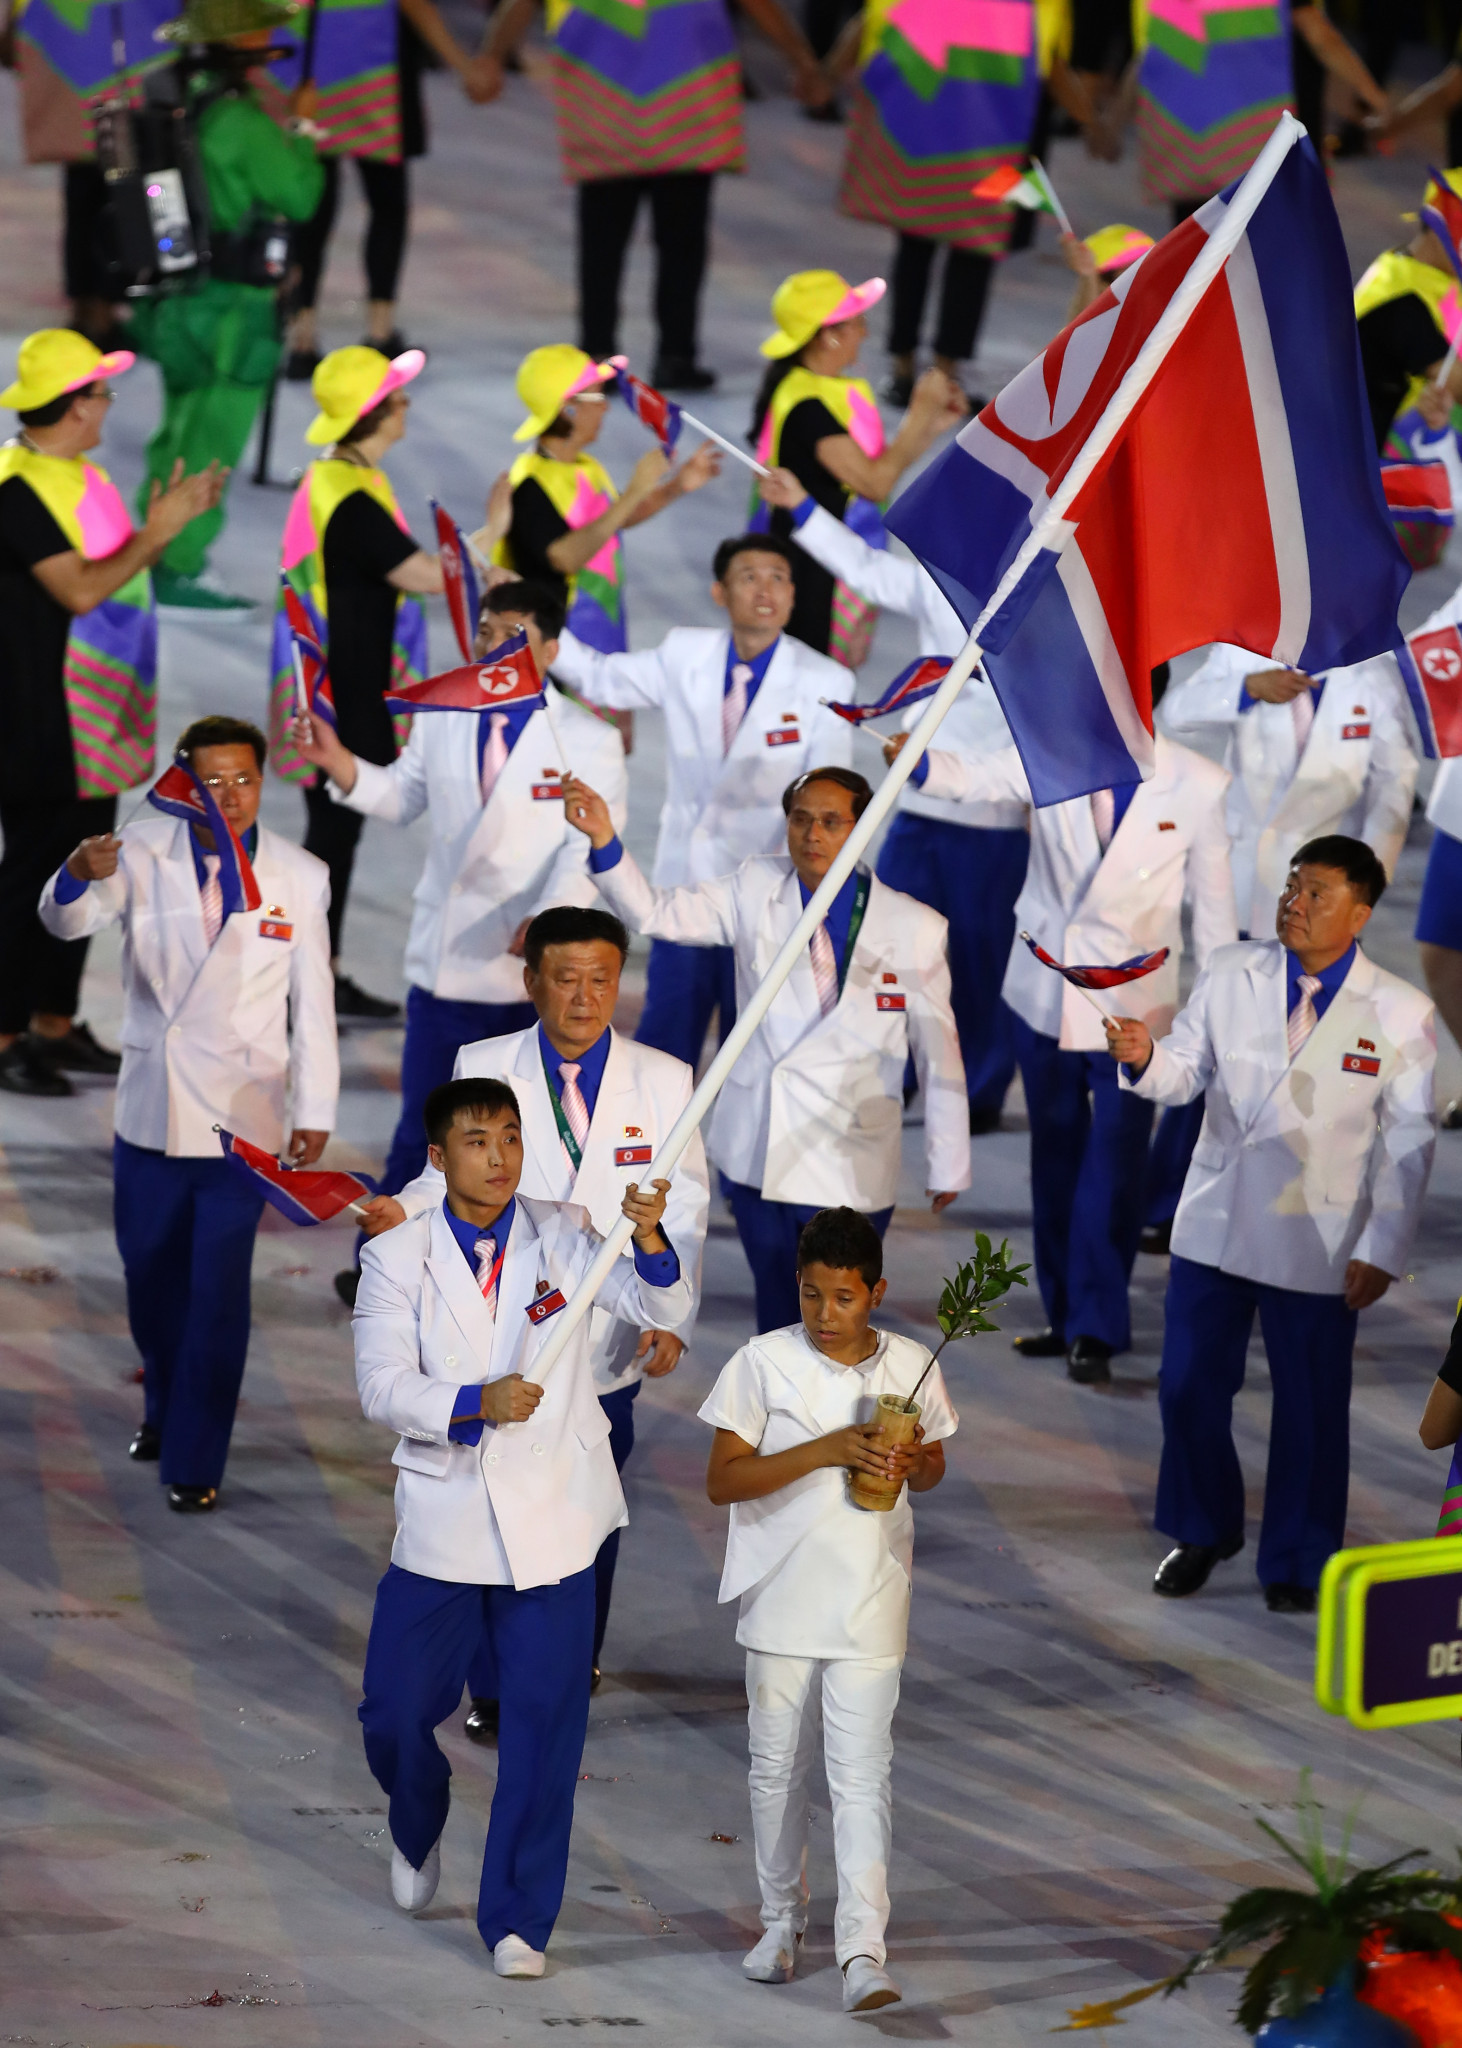 Japan to consider allowing North Korean athletes entry for Tokyo 2020